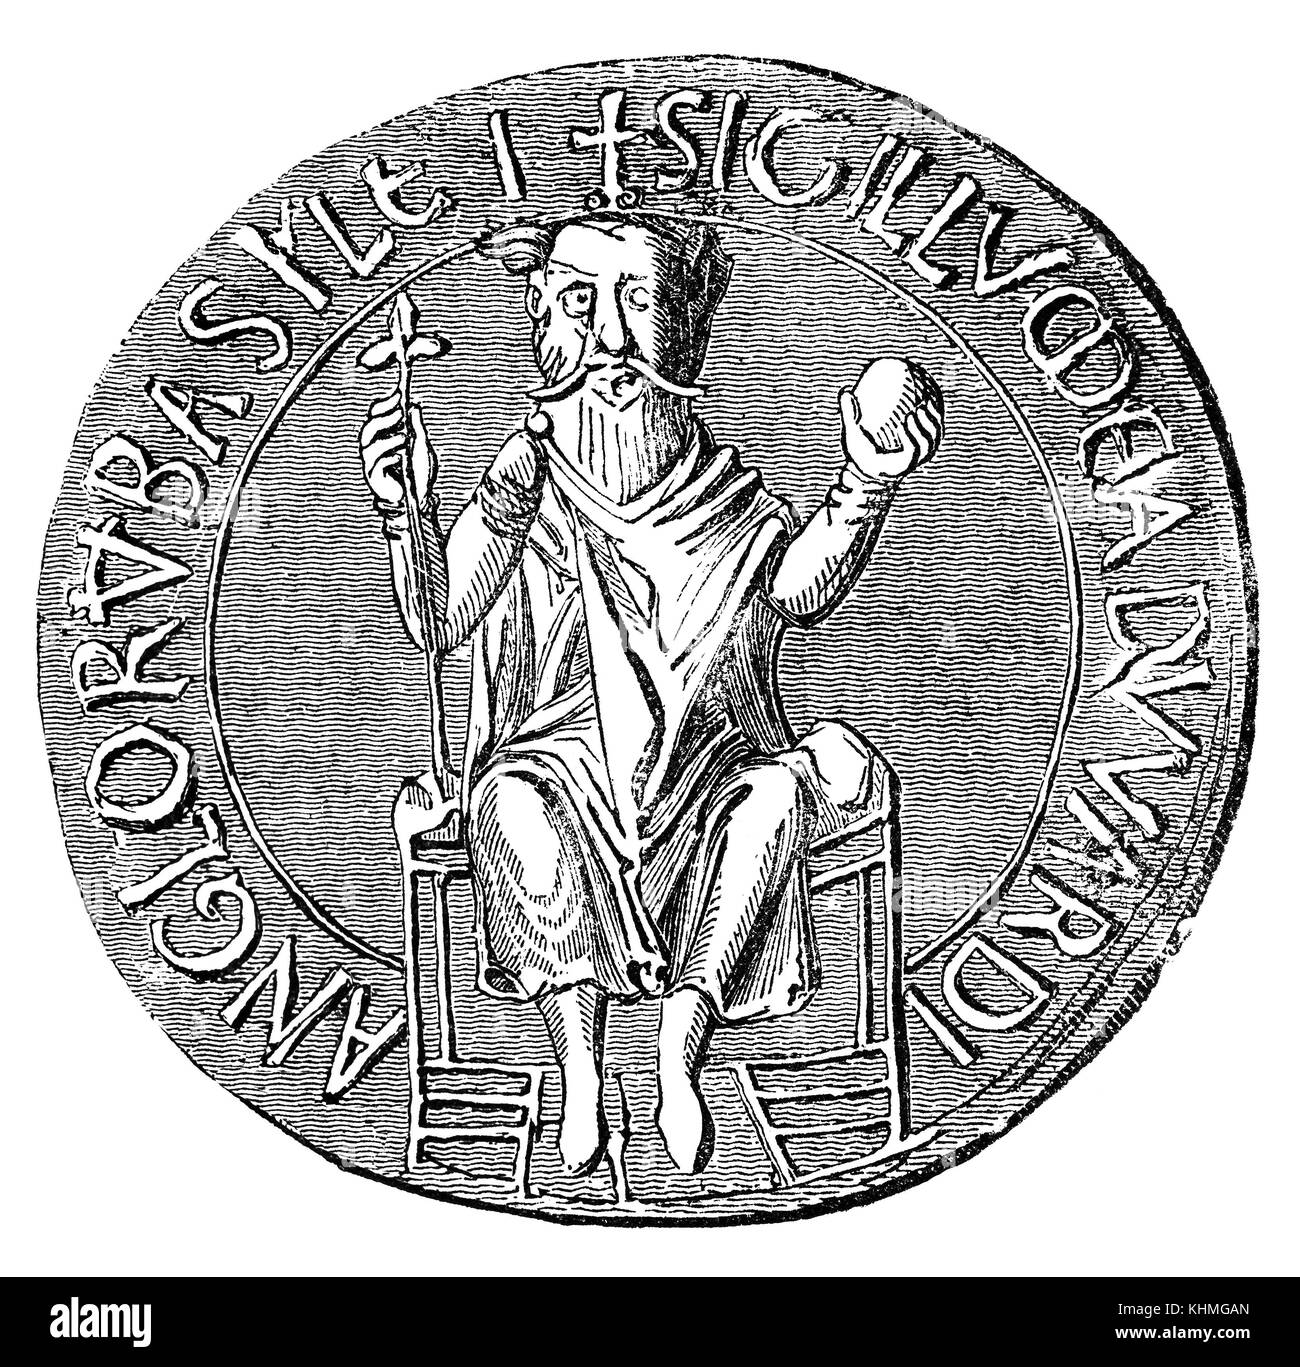 The Great Seal of Edward the Confessor  used to symbolise the Sovereign's approval of important state documents. - Stock Image